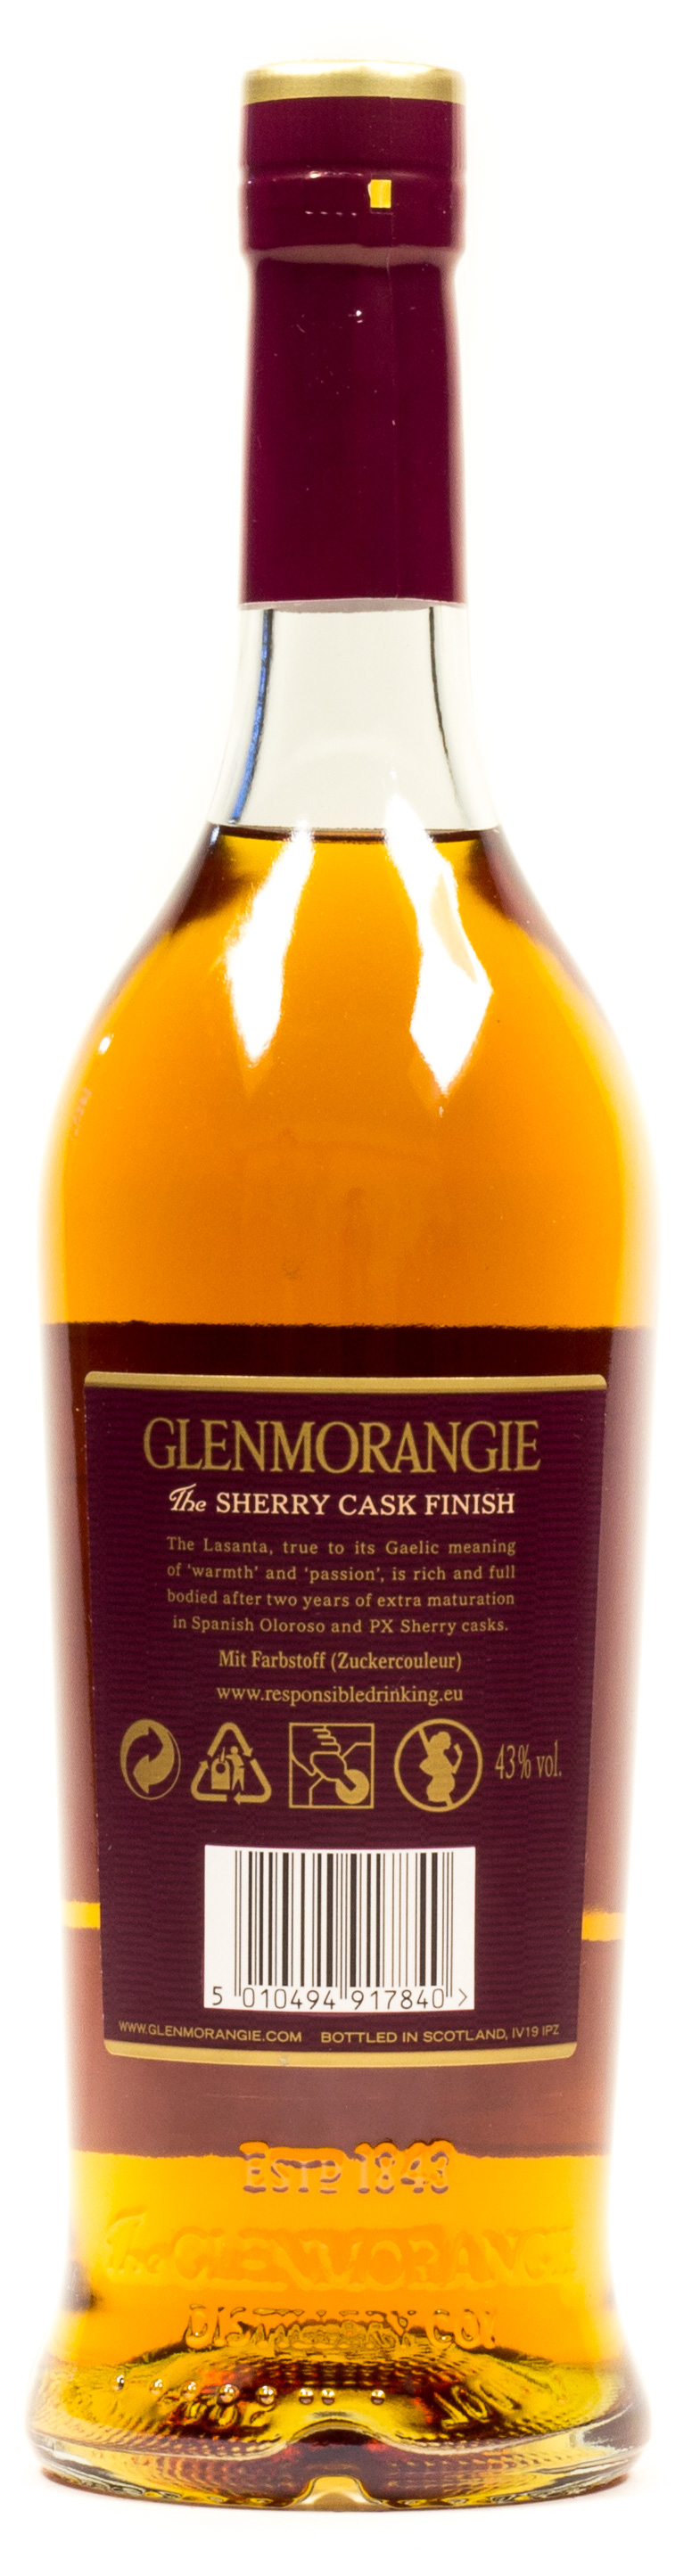 Glenmorangie Highland Single Malt Scotch Whisky 12 years 0,7 l